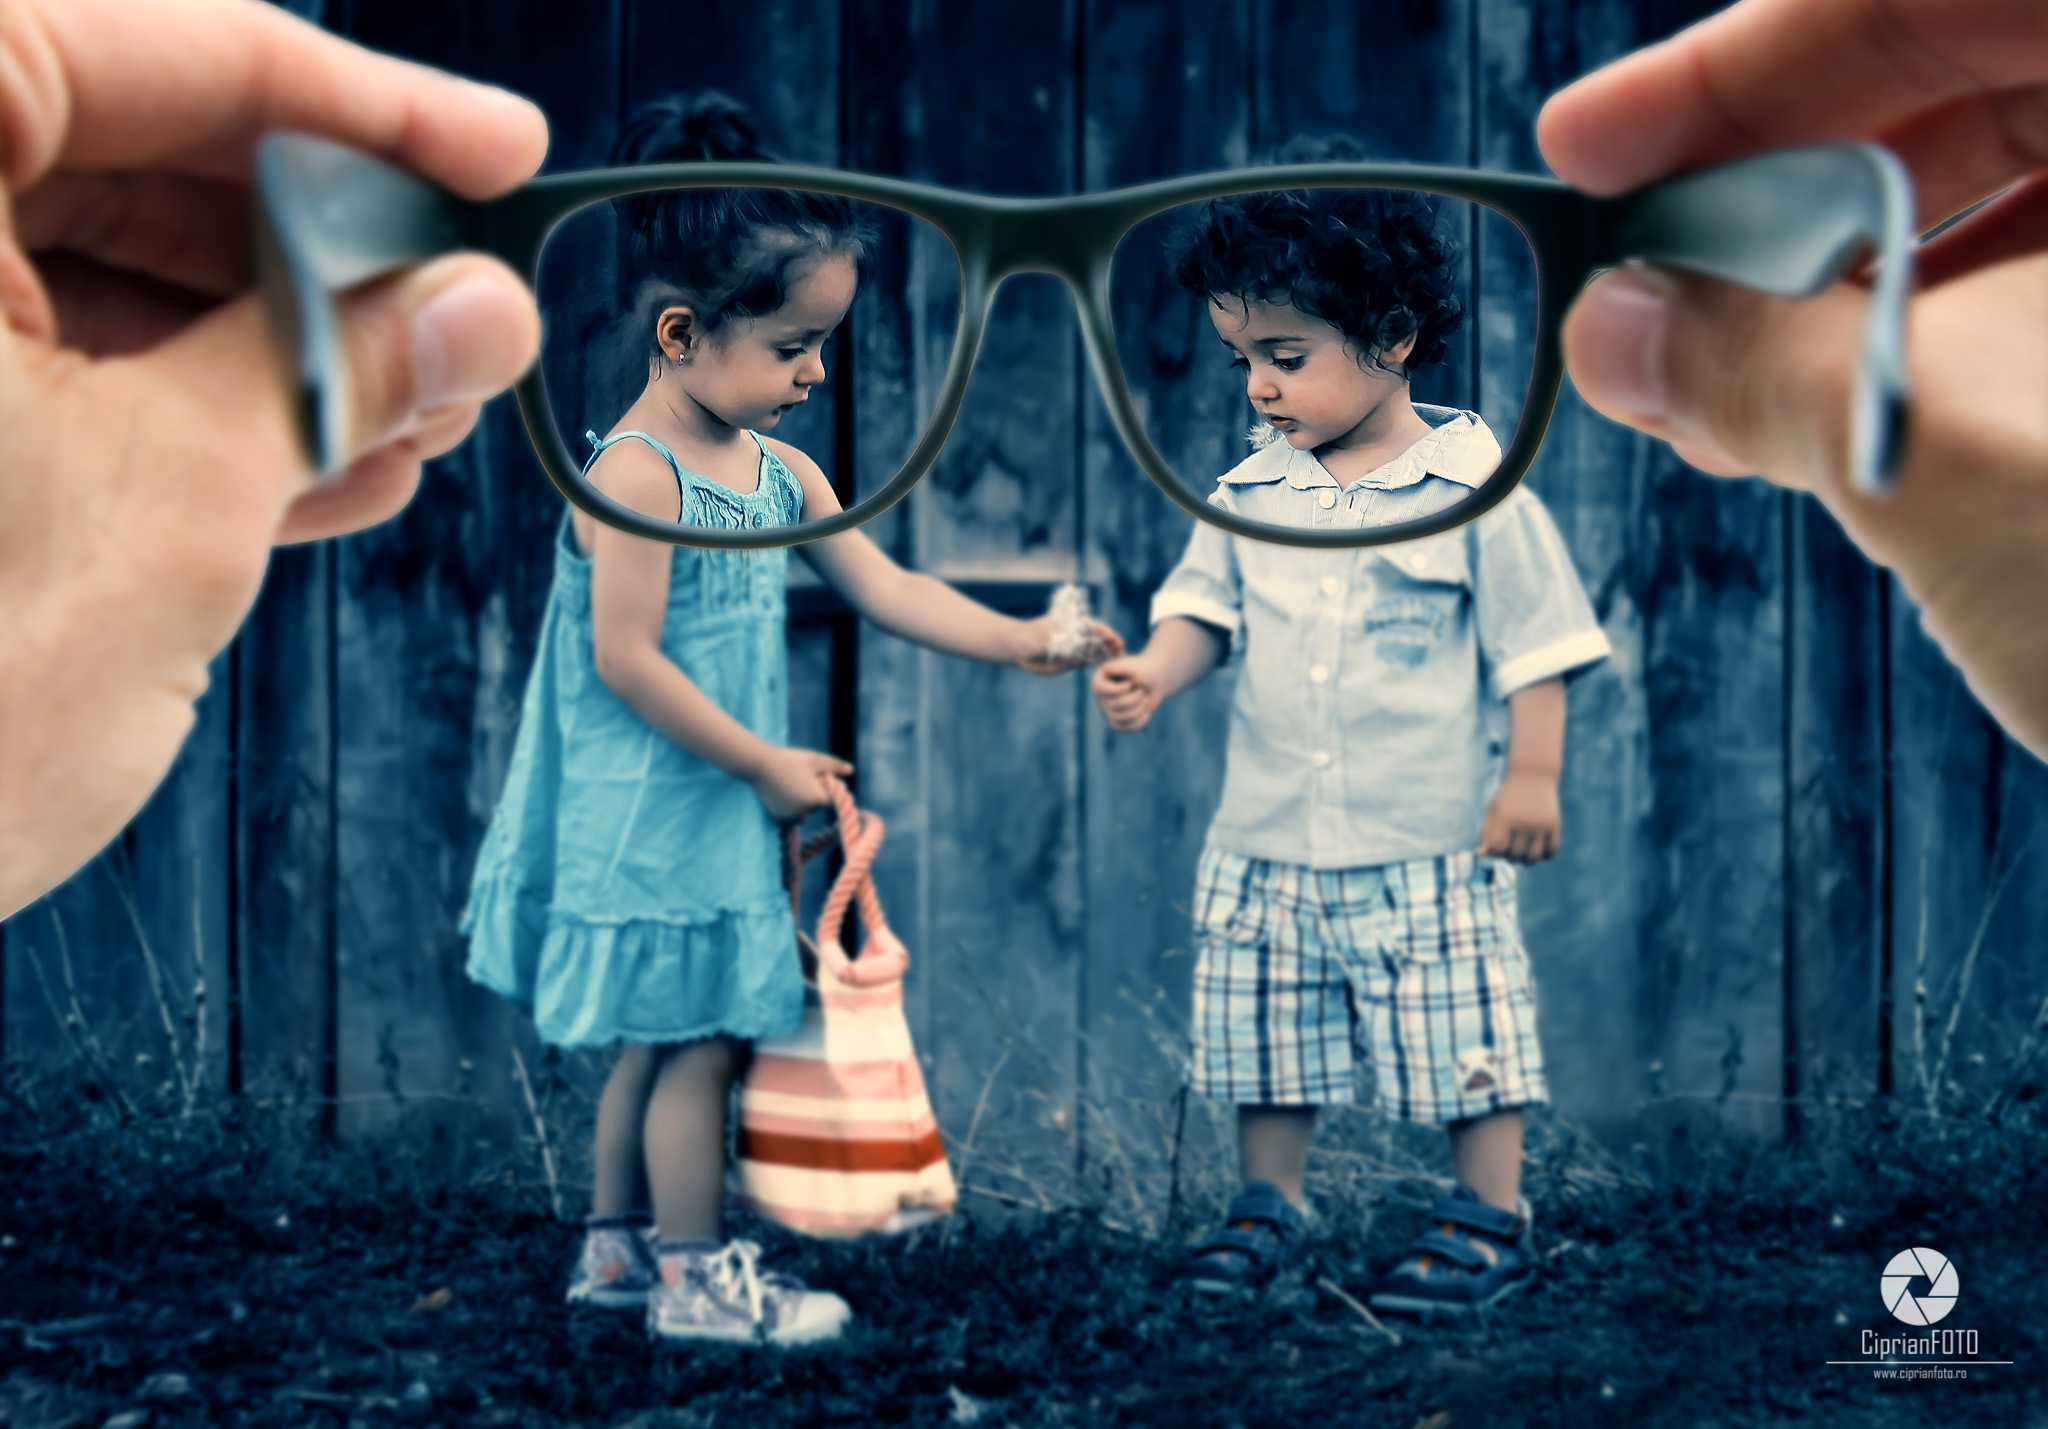 Childhood Seen Through Glasses, Photoshop Manipulation Tutorial, CiprianFOTO